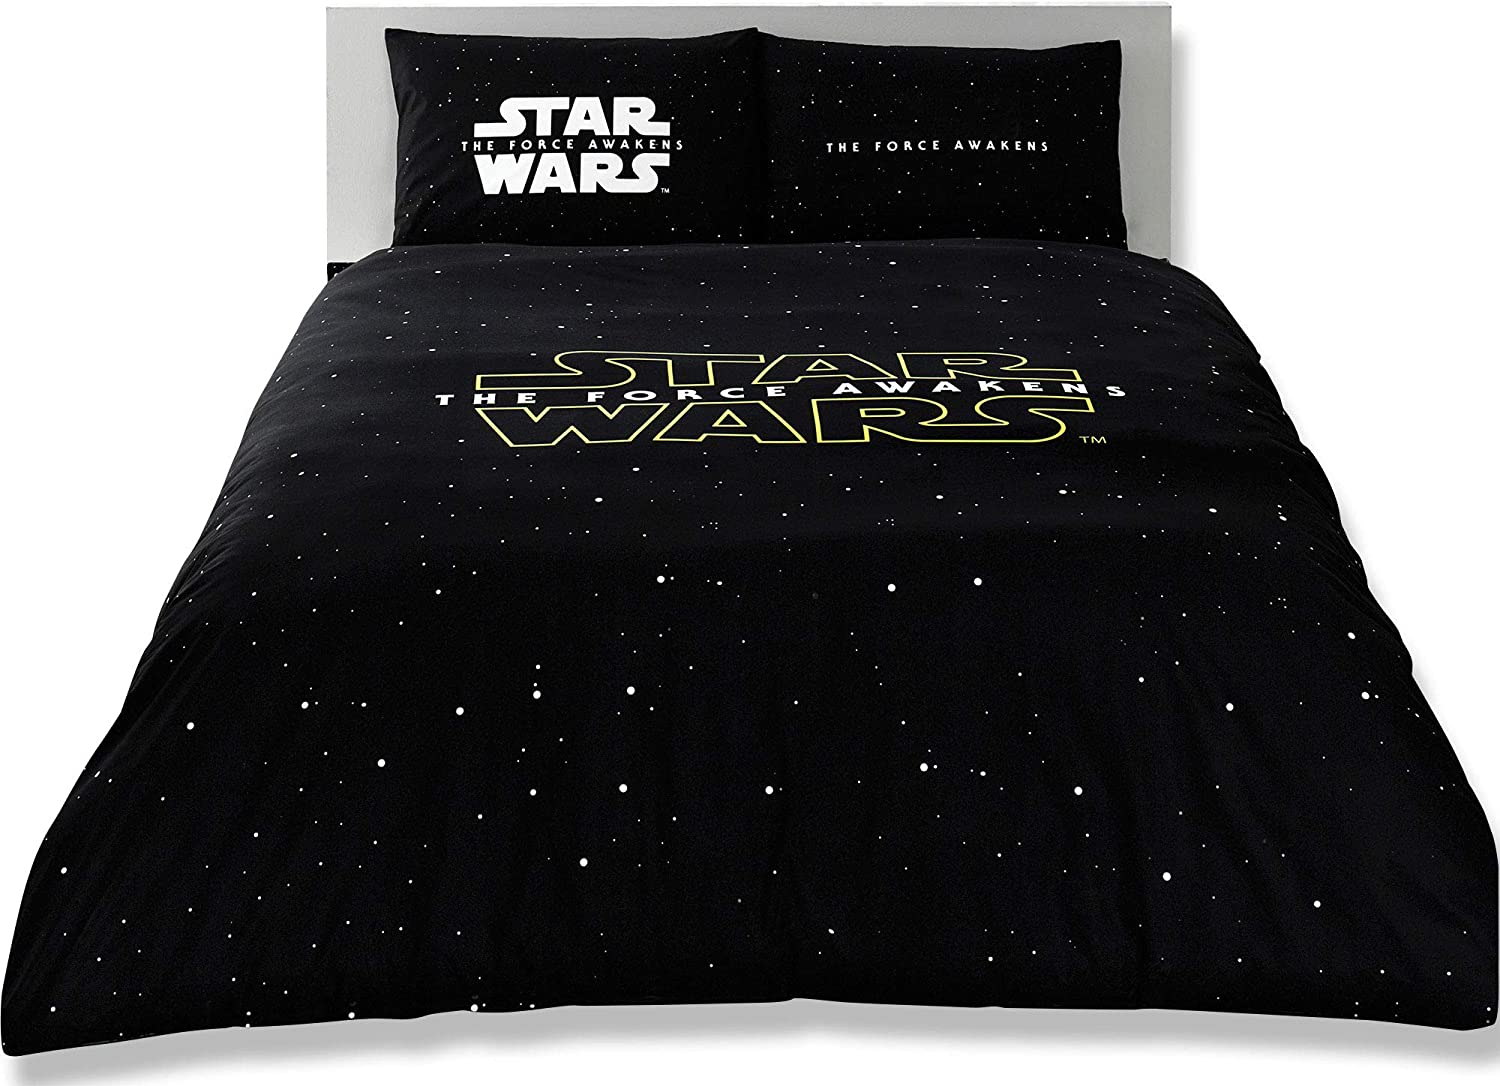 The Force Awakens Star Wars Licensed 100% Cotton 4pcs Full - Queen Size Bedding Linens